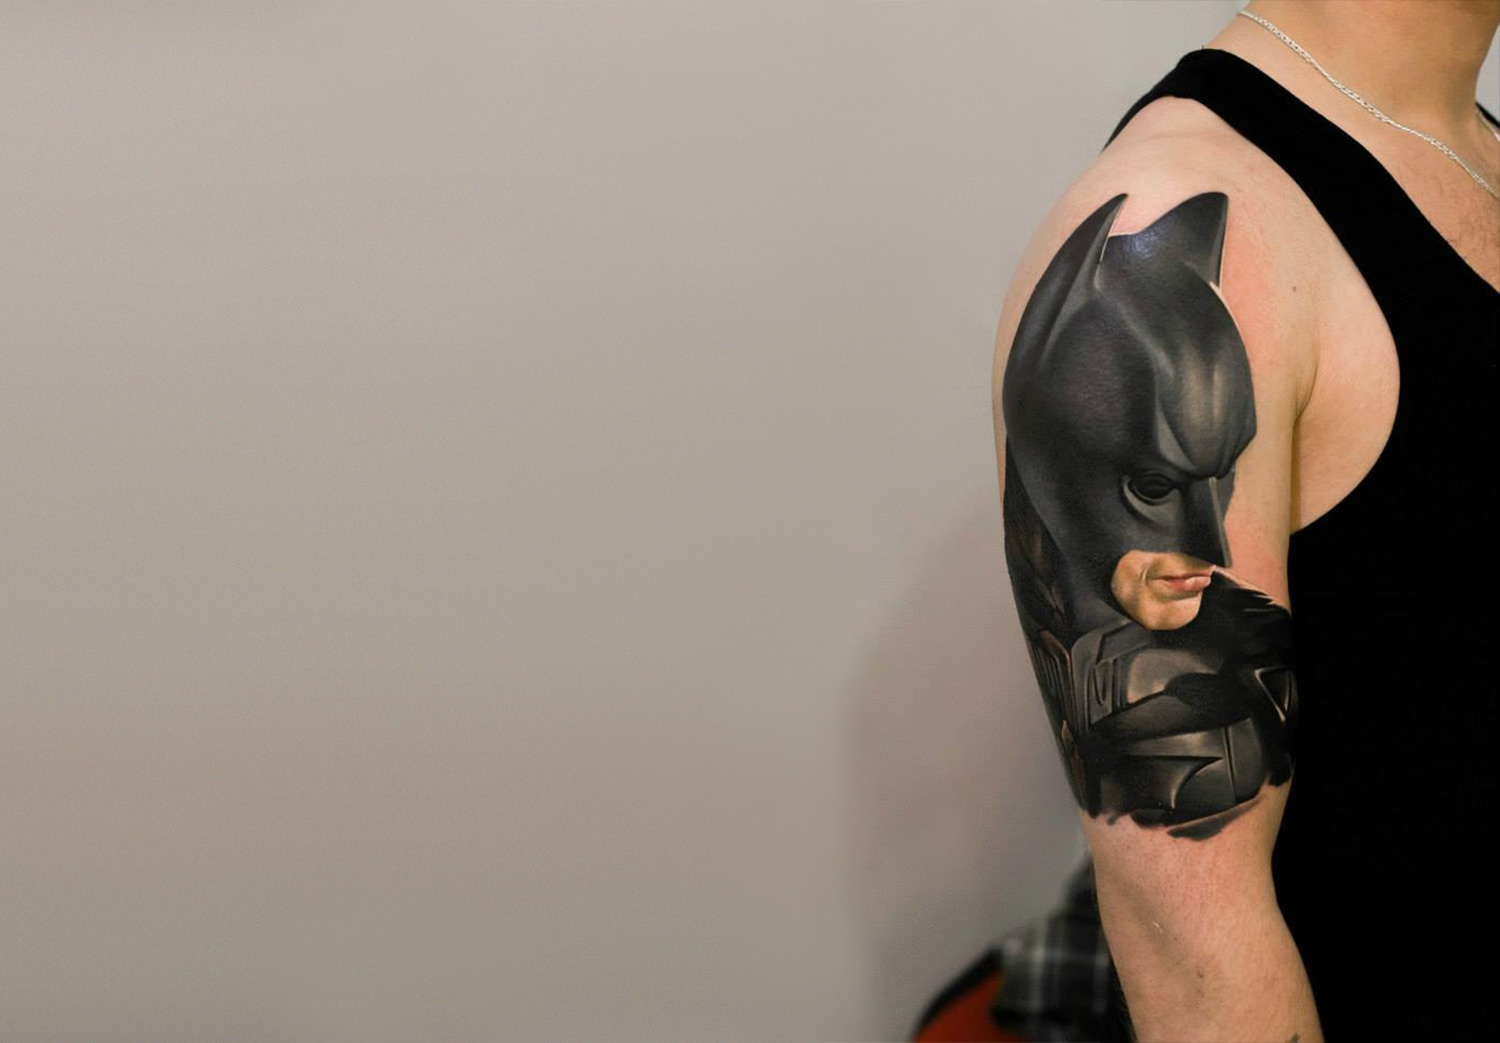 photorealist tattoo of batman on arm by denis sivak